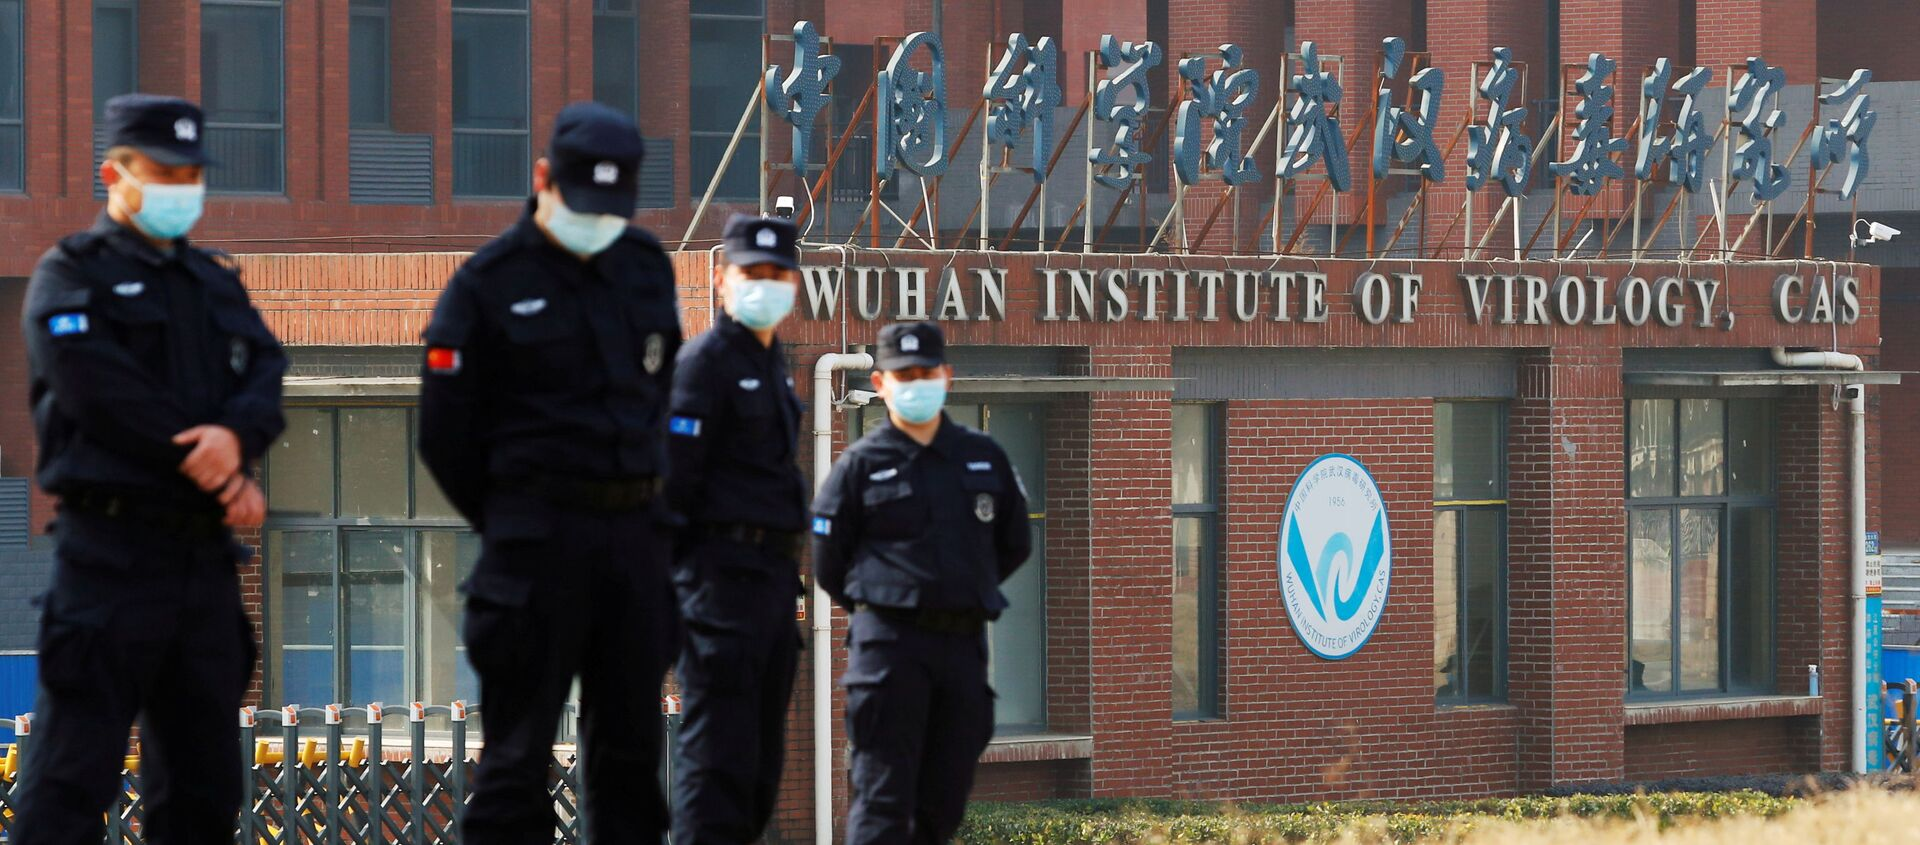 Security personnel keep watch outside Wuhan Institute of Virology during the visit by the World Health Organisation (WHO) team tasked with investigating the origins of the coronavirus disease (COVID-19), in Wuhan, Hubei province, China, 3 February 2021 - Sputnik International, 1920, 05.09.2021